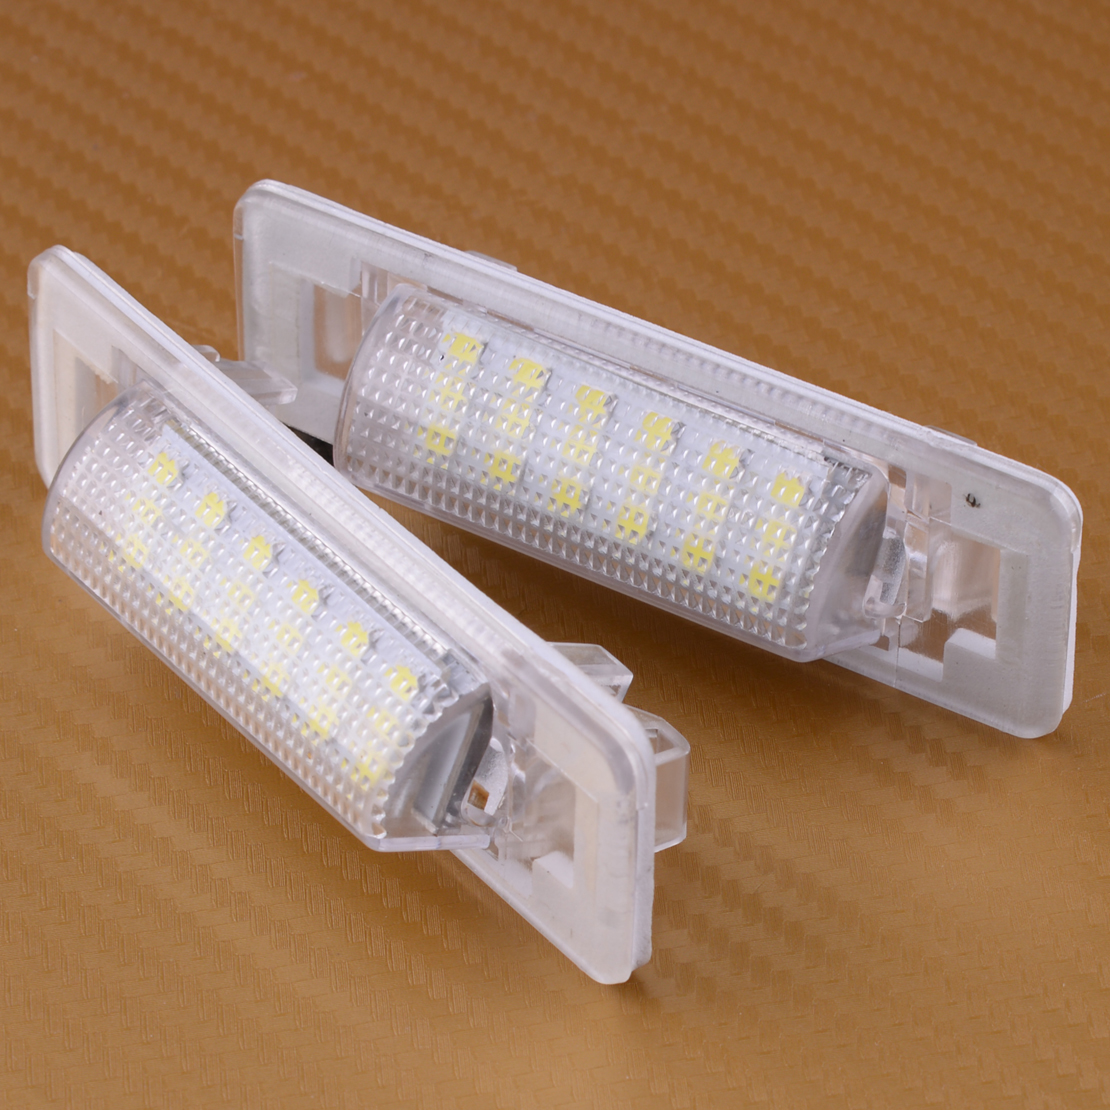 DWCX 2pcs LED Error Free License Number Plate Light Fit for <font><b>Mercedes</b></font> Benz W202 W210 1995 <font><b>1996</b></font> 1997 1998 1999 2000 2001 2002 image